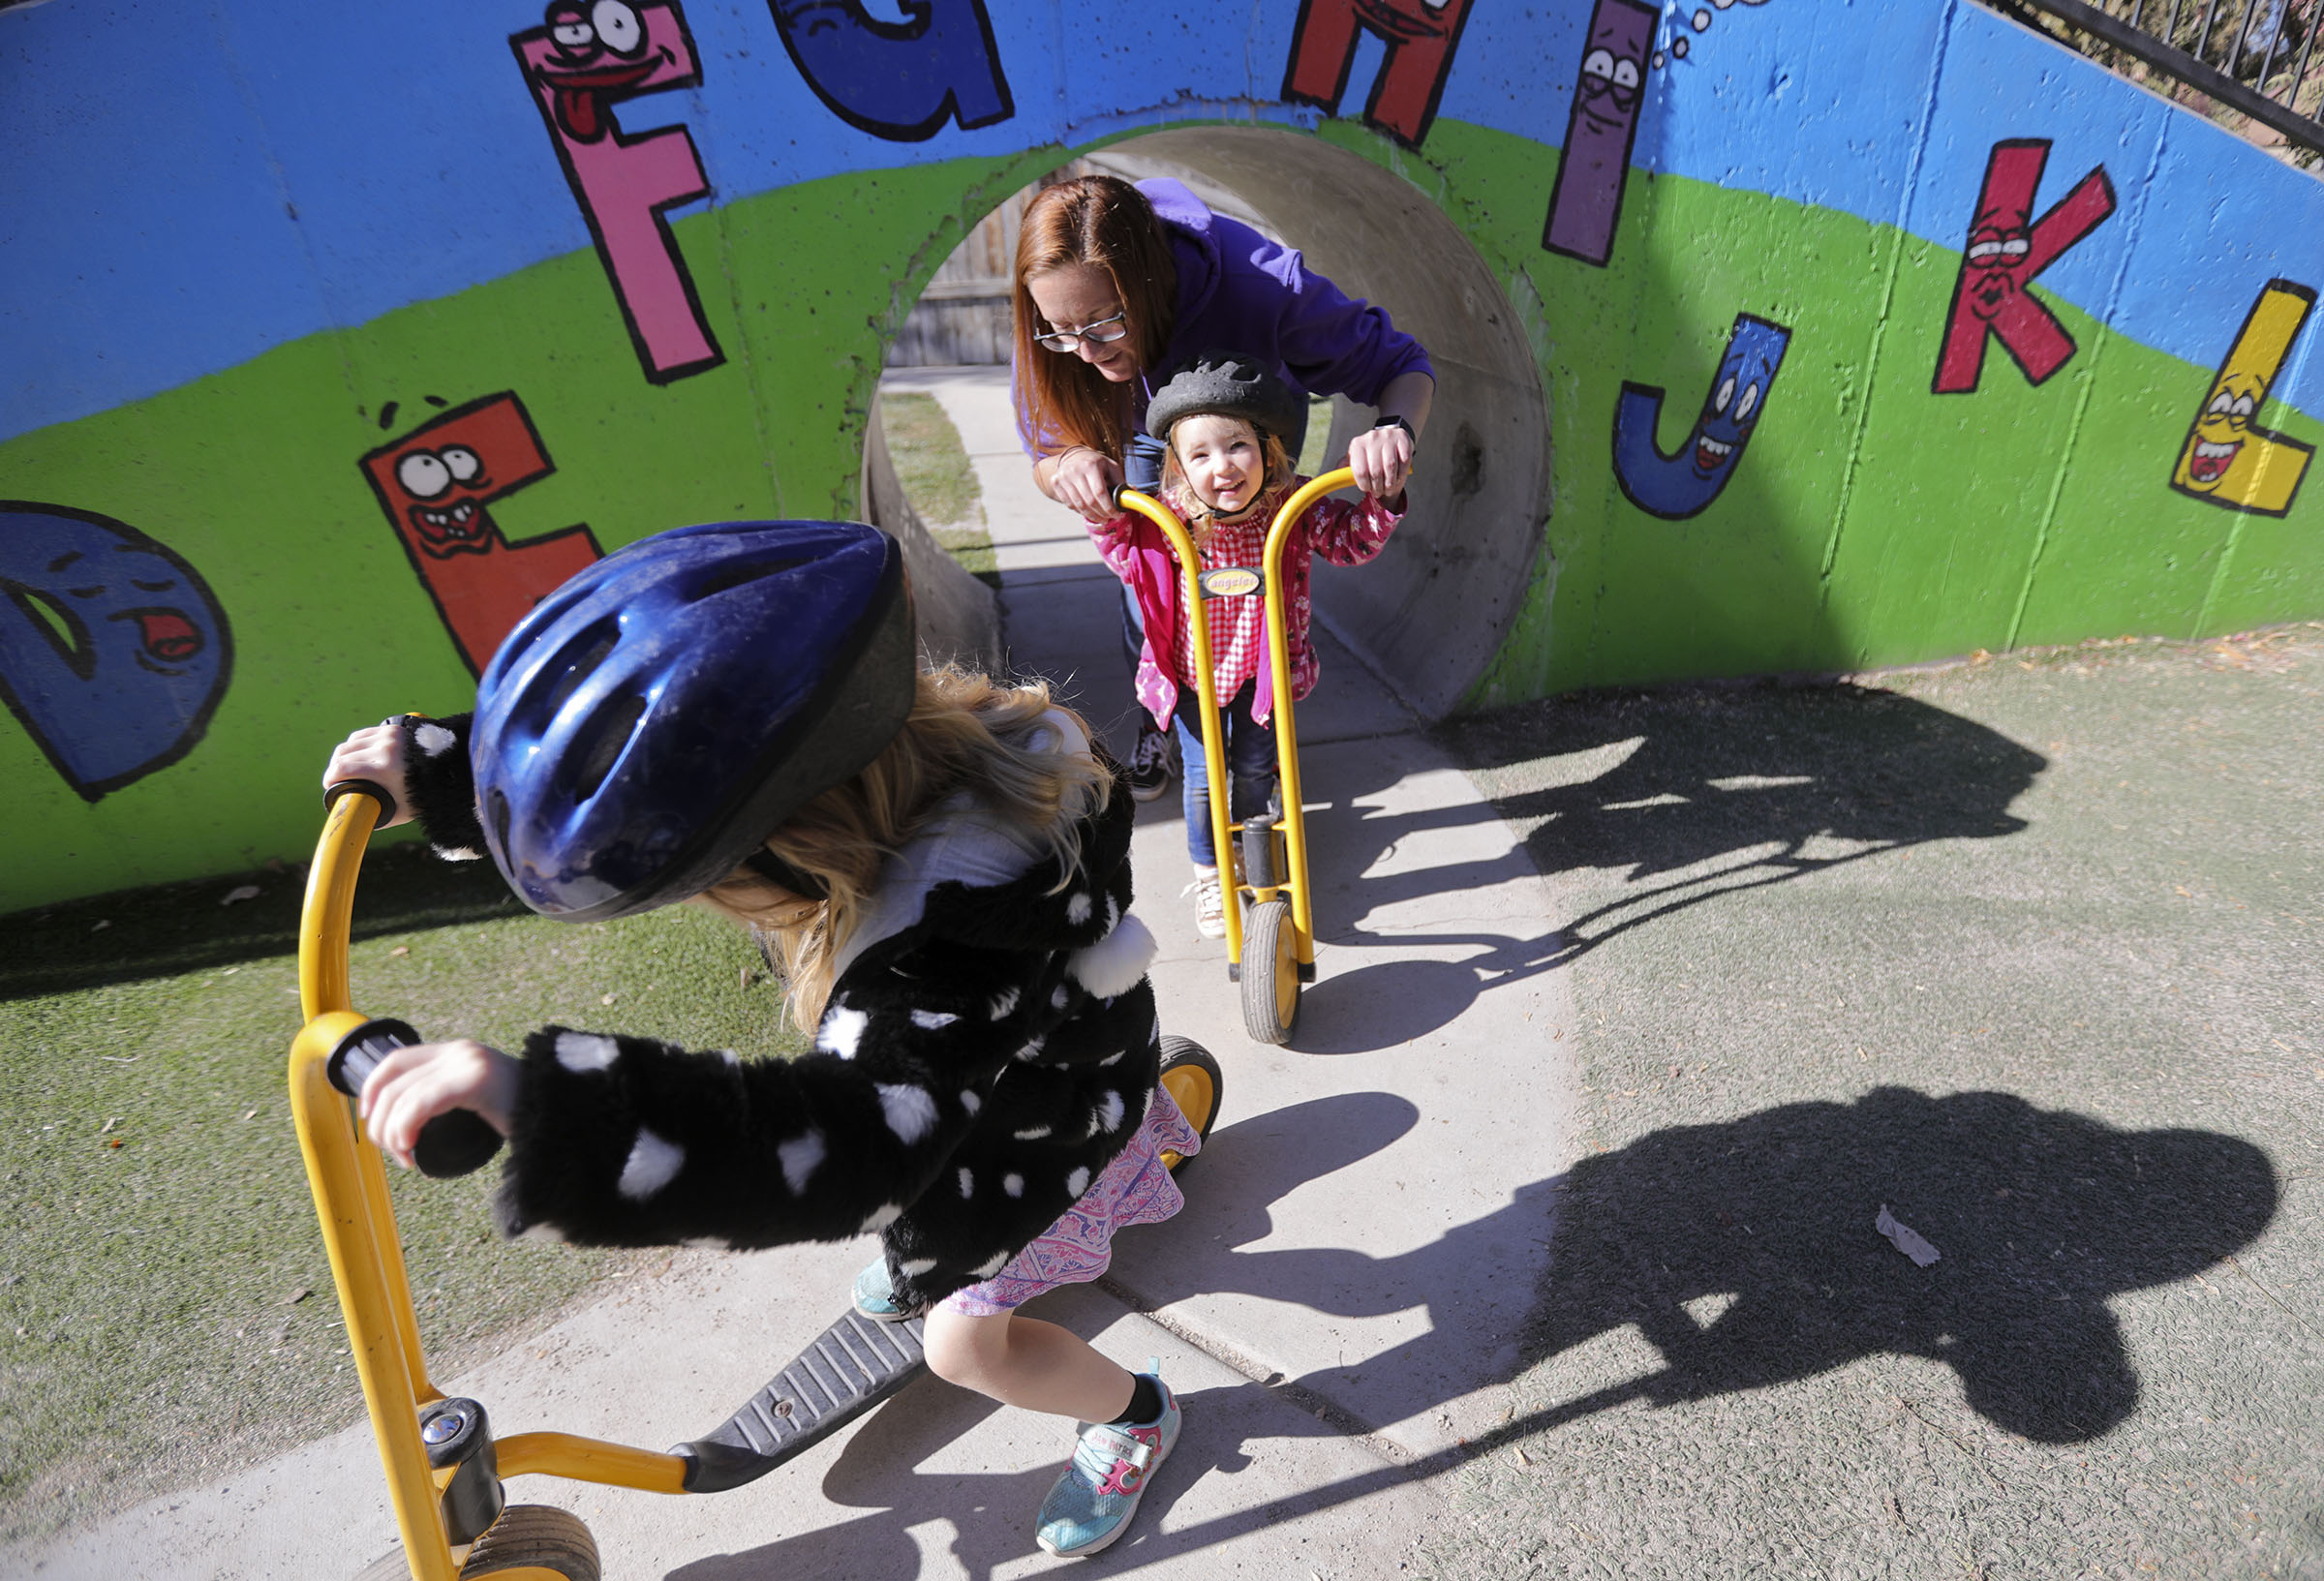 Preschool teacher Jenna Berkey pushes Avery Black on a scooter at A to Z Building Blocks, a child care and preschool facility, in American Fork on Thursday, Nov. 5, 2020.